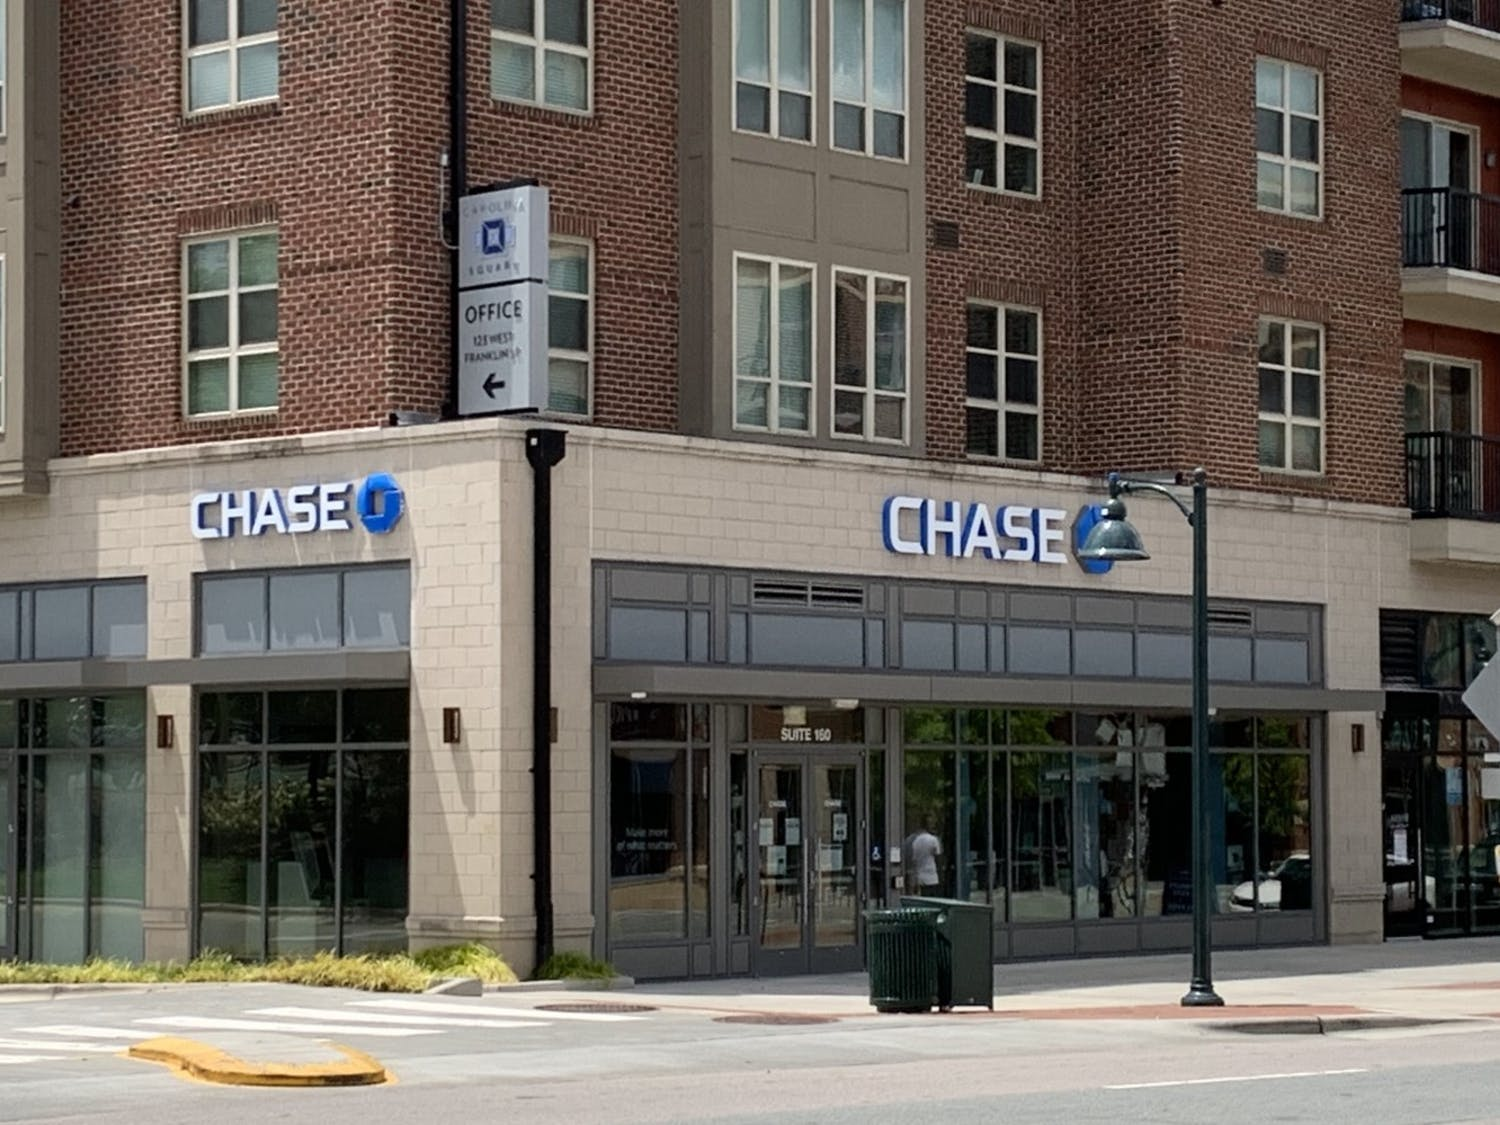 Branch of Chase Bank located on West Franklin St. in Downtown Chapel Hill